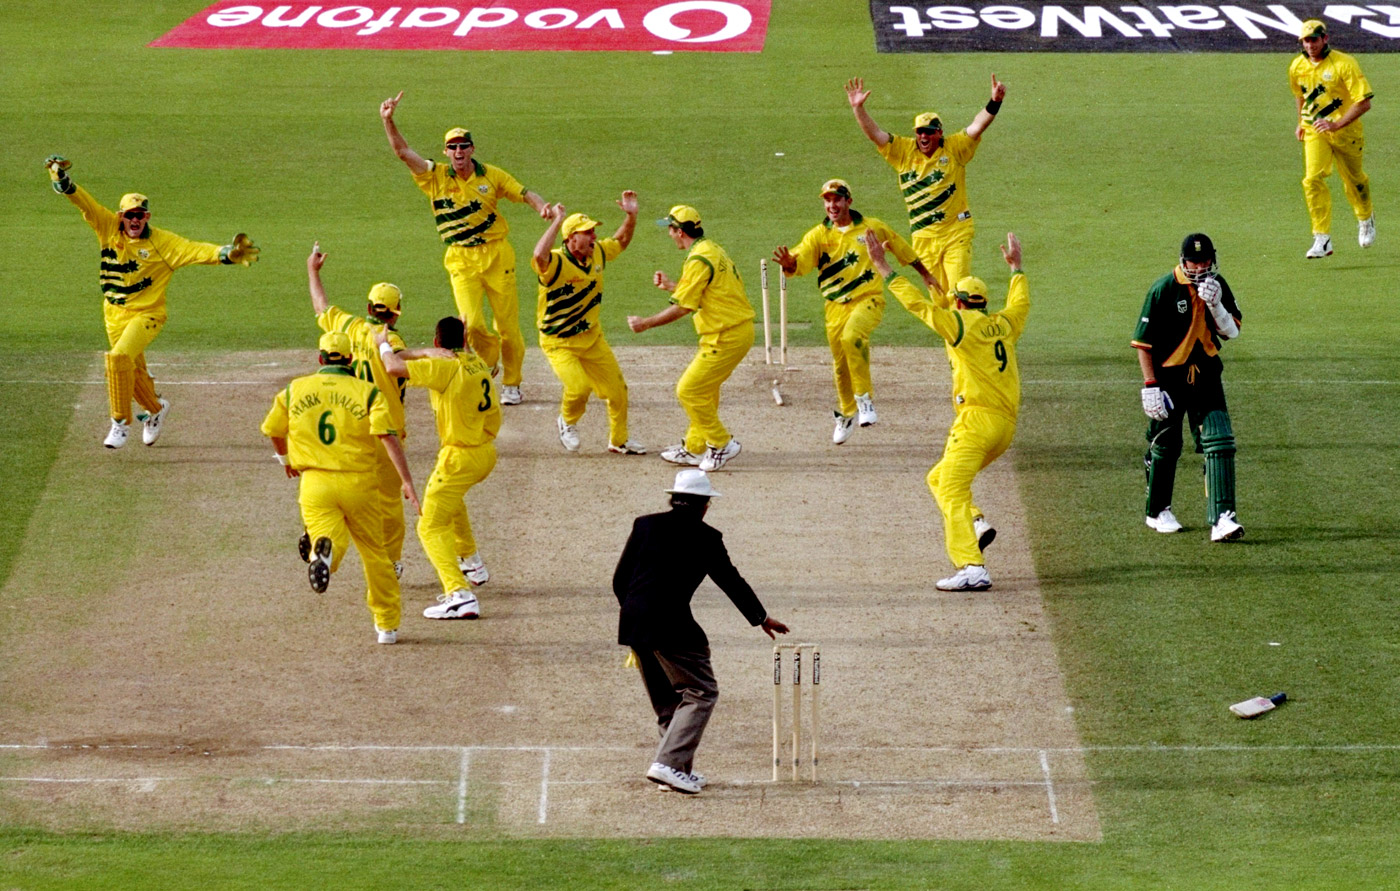 Allan Donald is run out and the game is tied